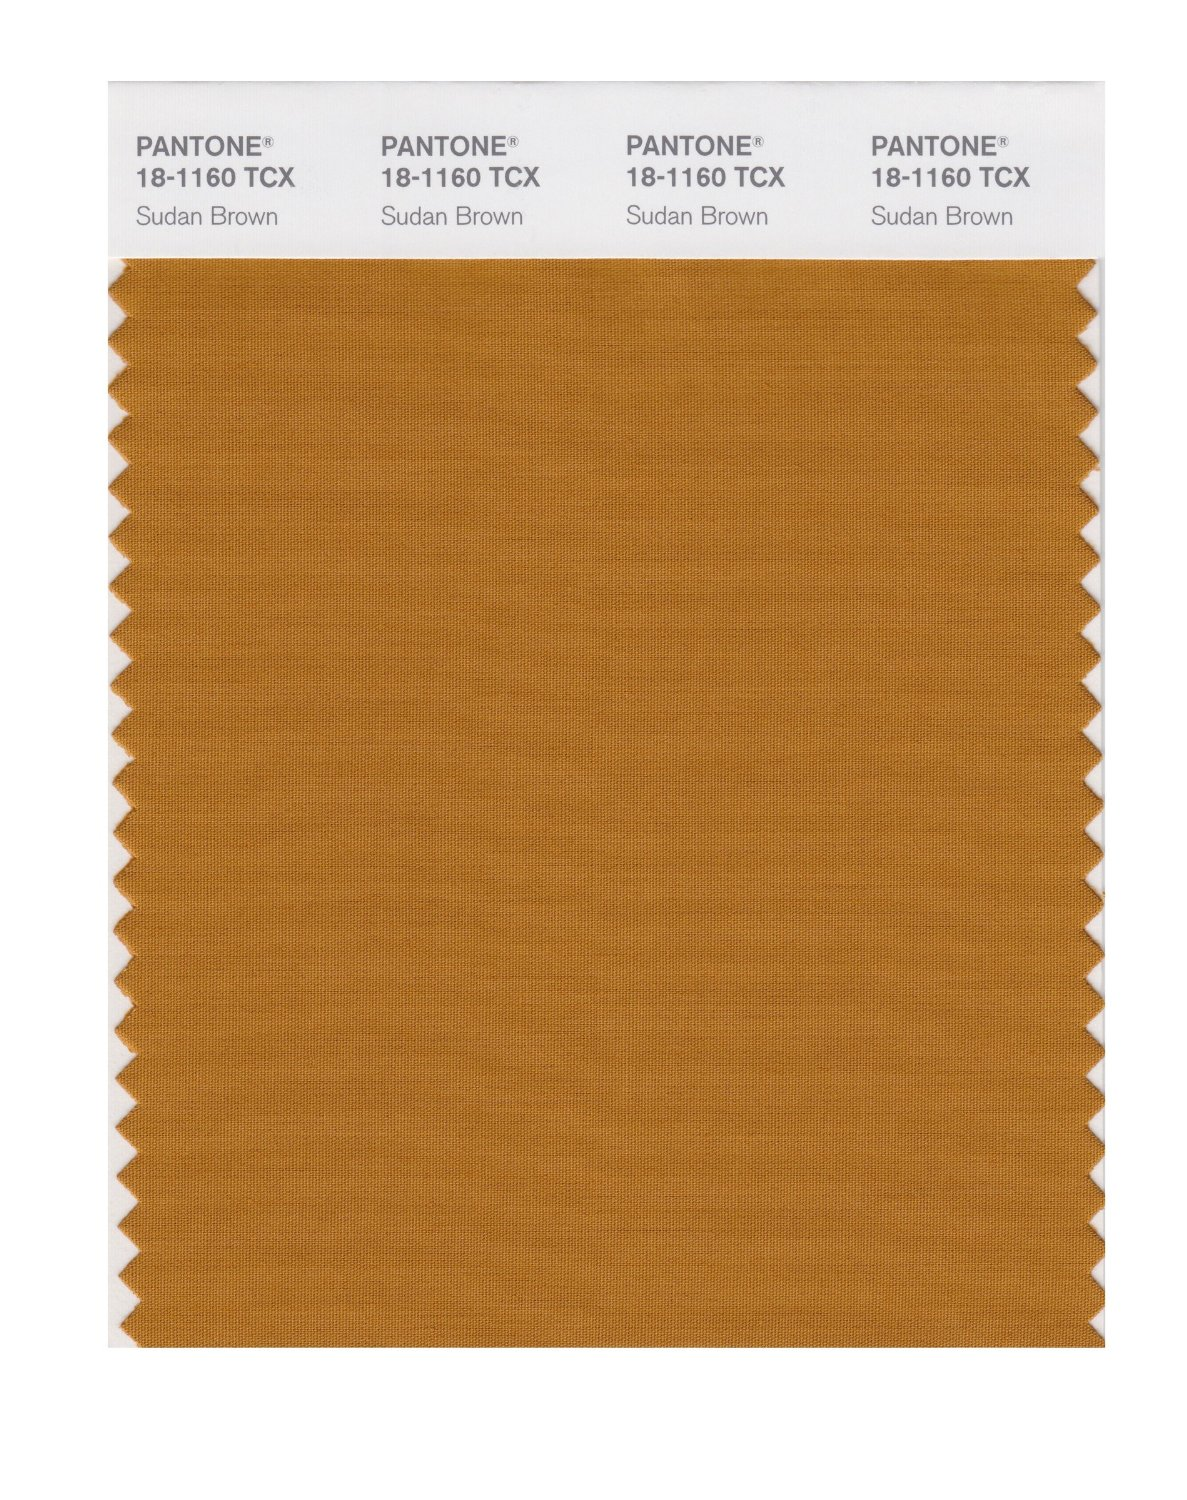 Pantone Smart Swatch 18-1160 Sudan Brown